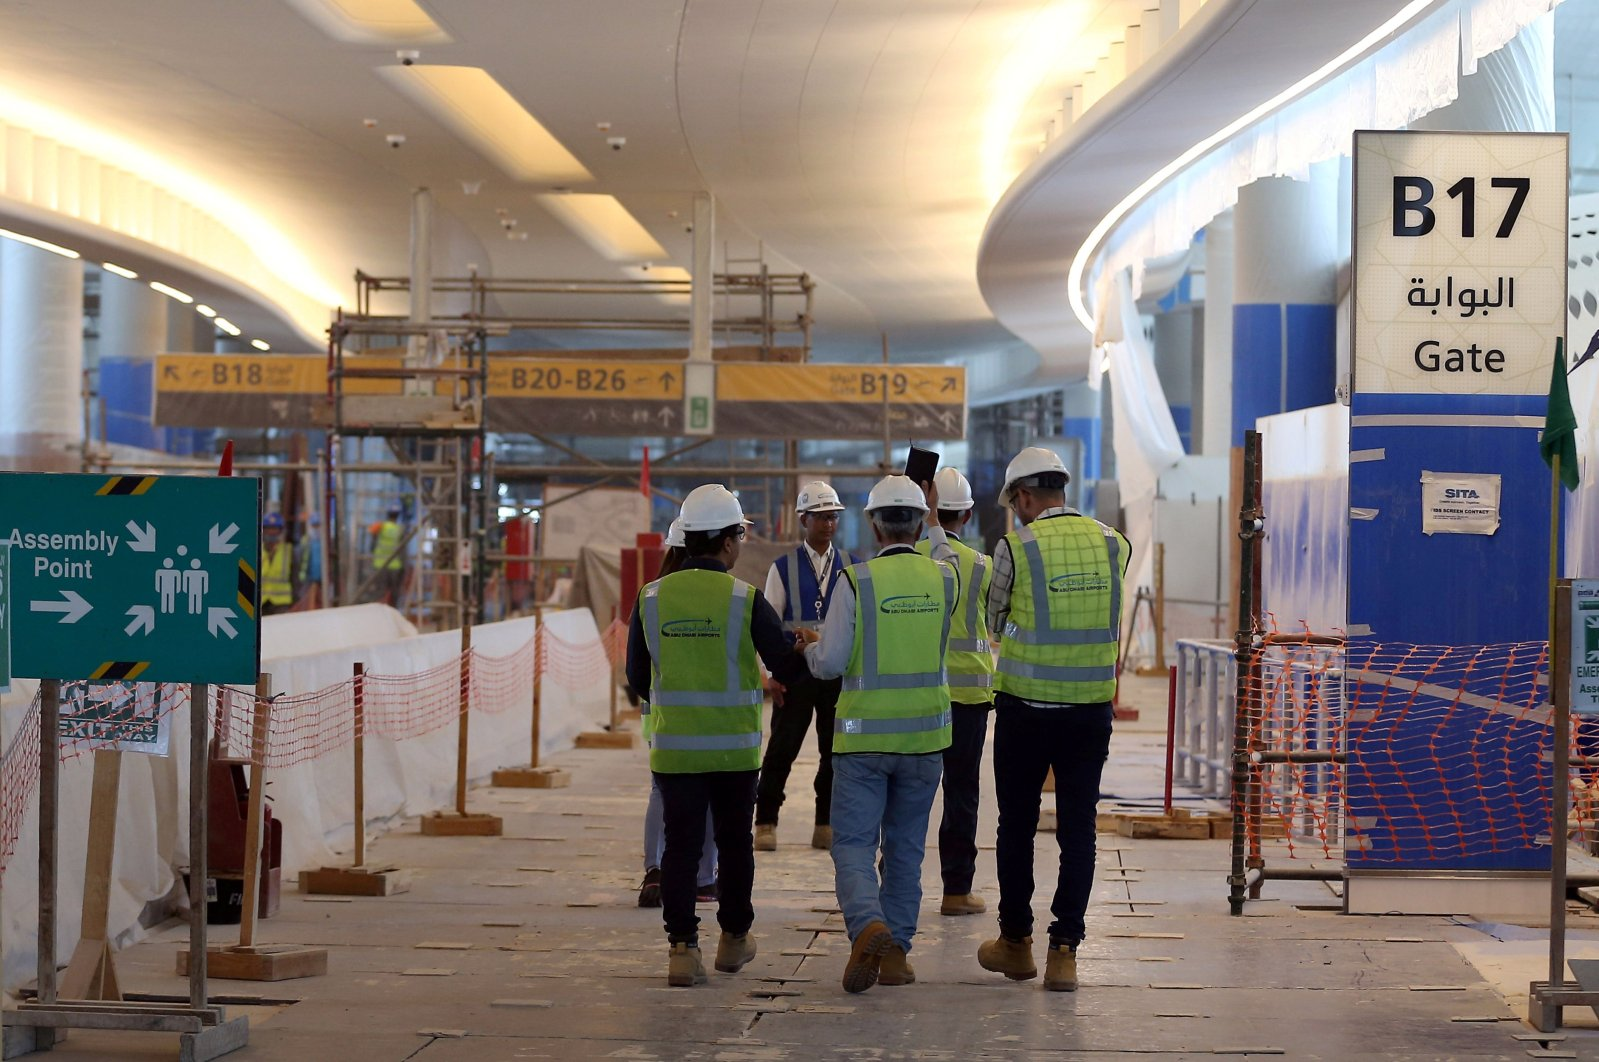 Visitors tour the construction site of the midfield terminal of Abu Dhabi International Airport in Abu Dhabi, United Arab Emirates, Nov. 6, 2017. (Reuters Photo)